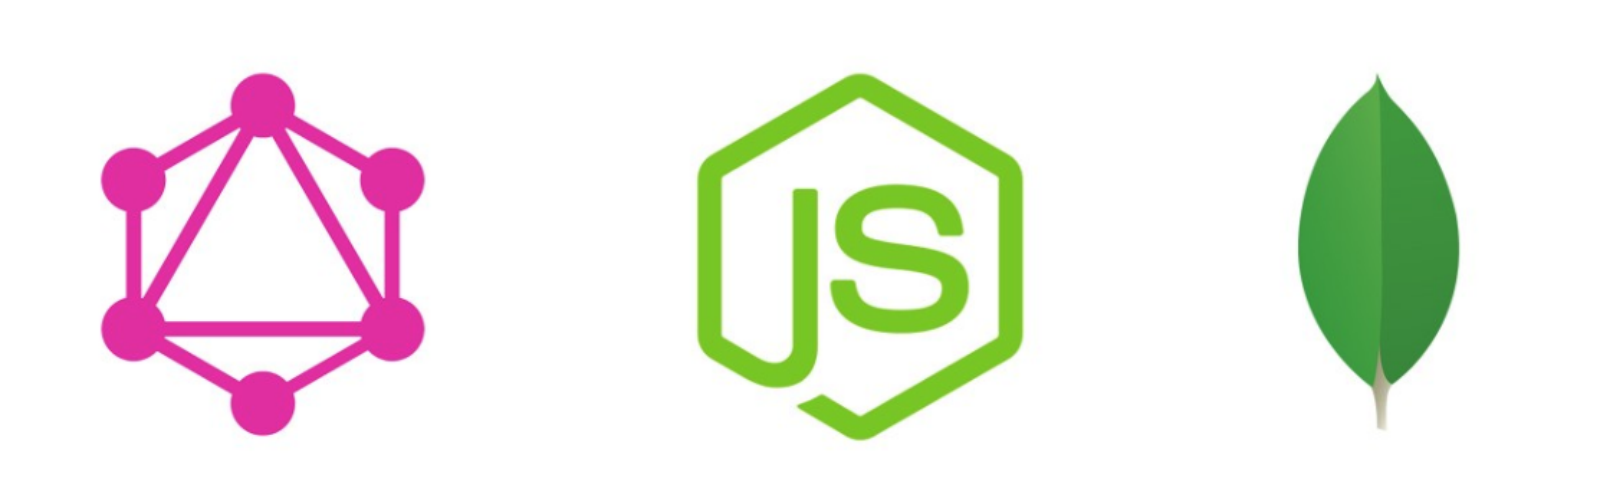 How To Set Up A Graphql Server Using Node Js Express Mongodb